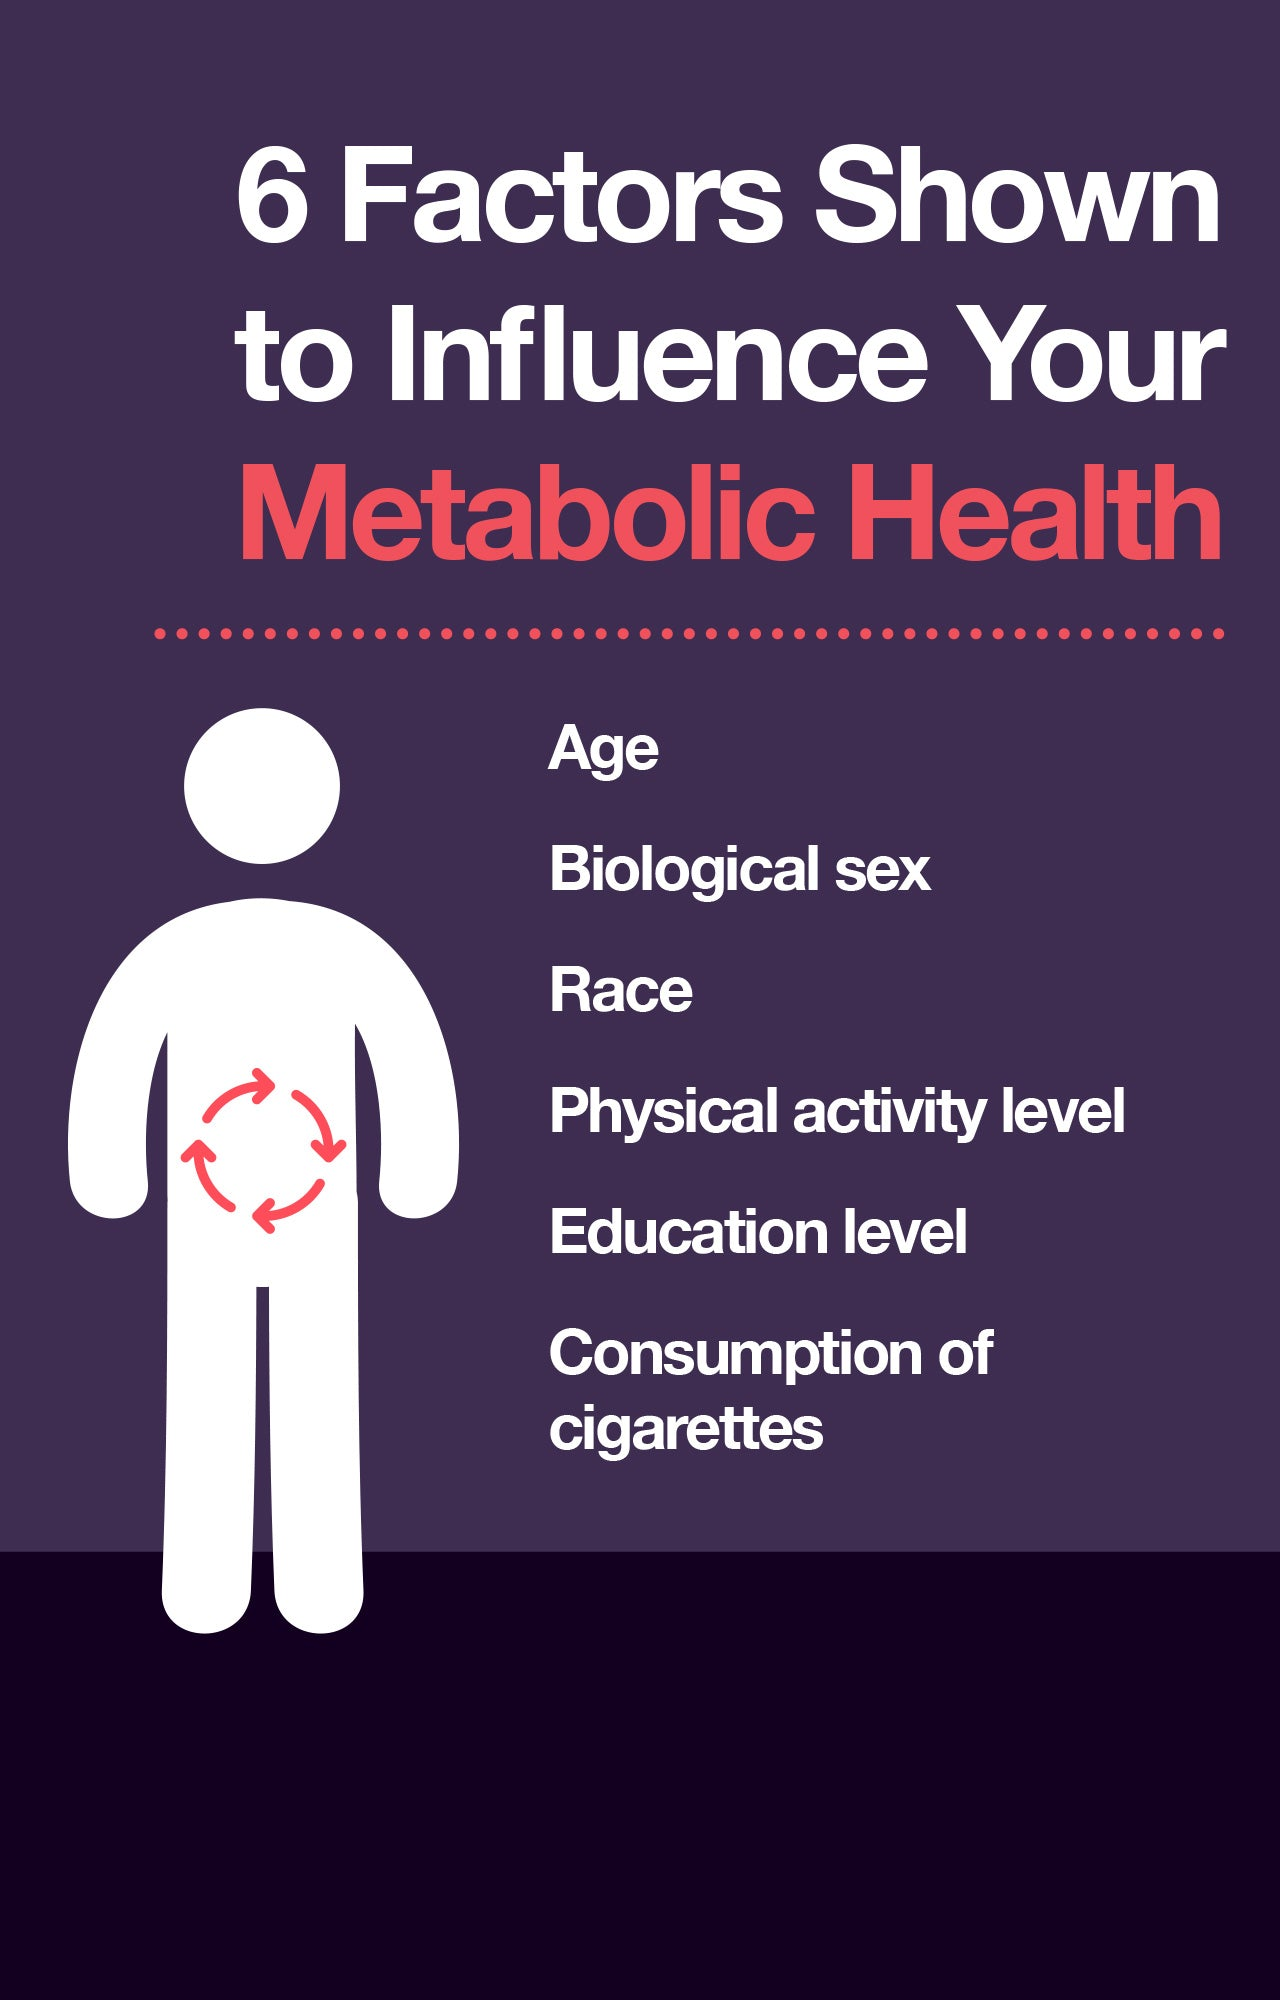 How do you improve your metabolic health? You need to get moving, you need to eat smart, and you need to pay attention to your body.